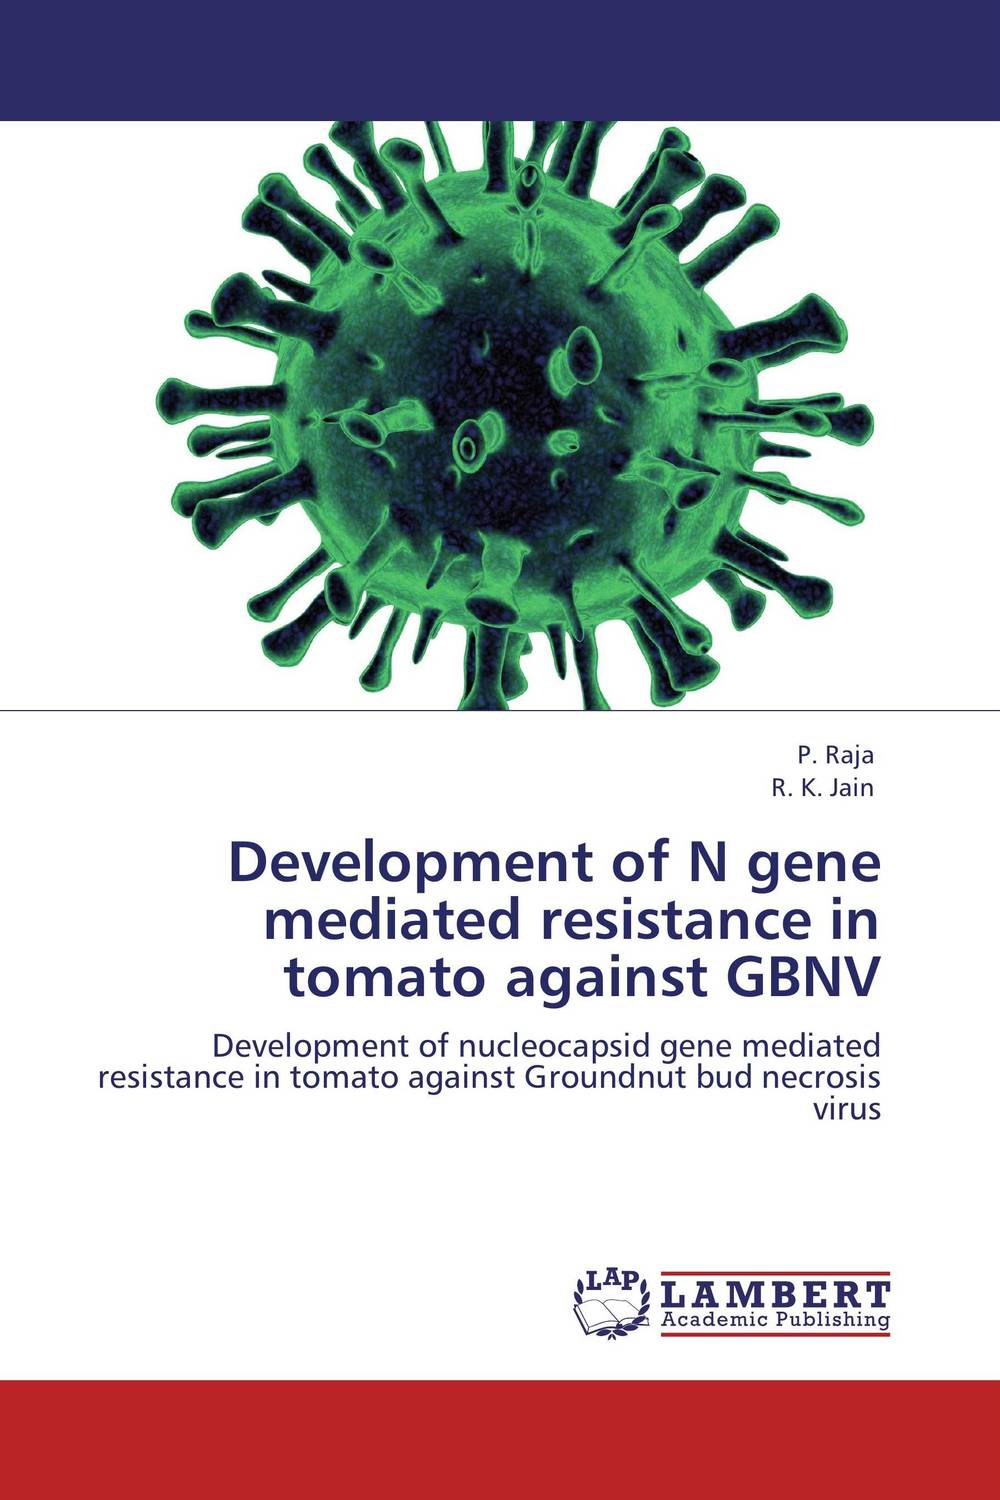 Development of N gene mediated resistance in tomato against GBNV resistance study in tomato